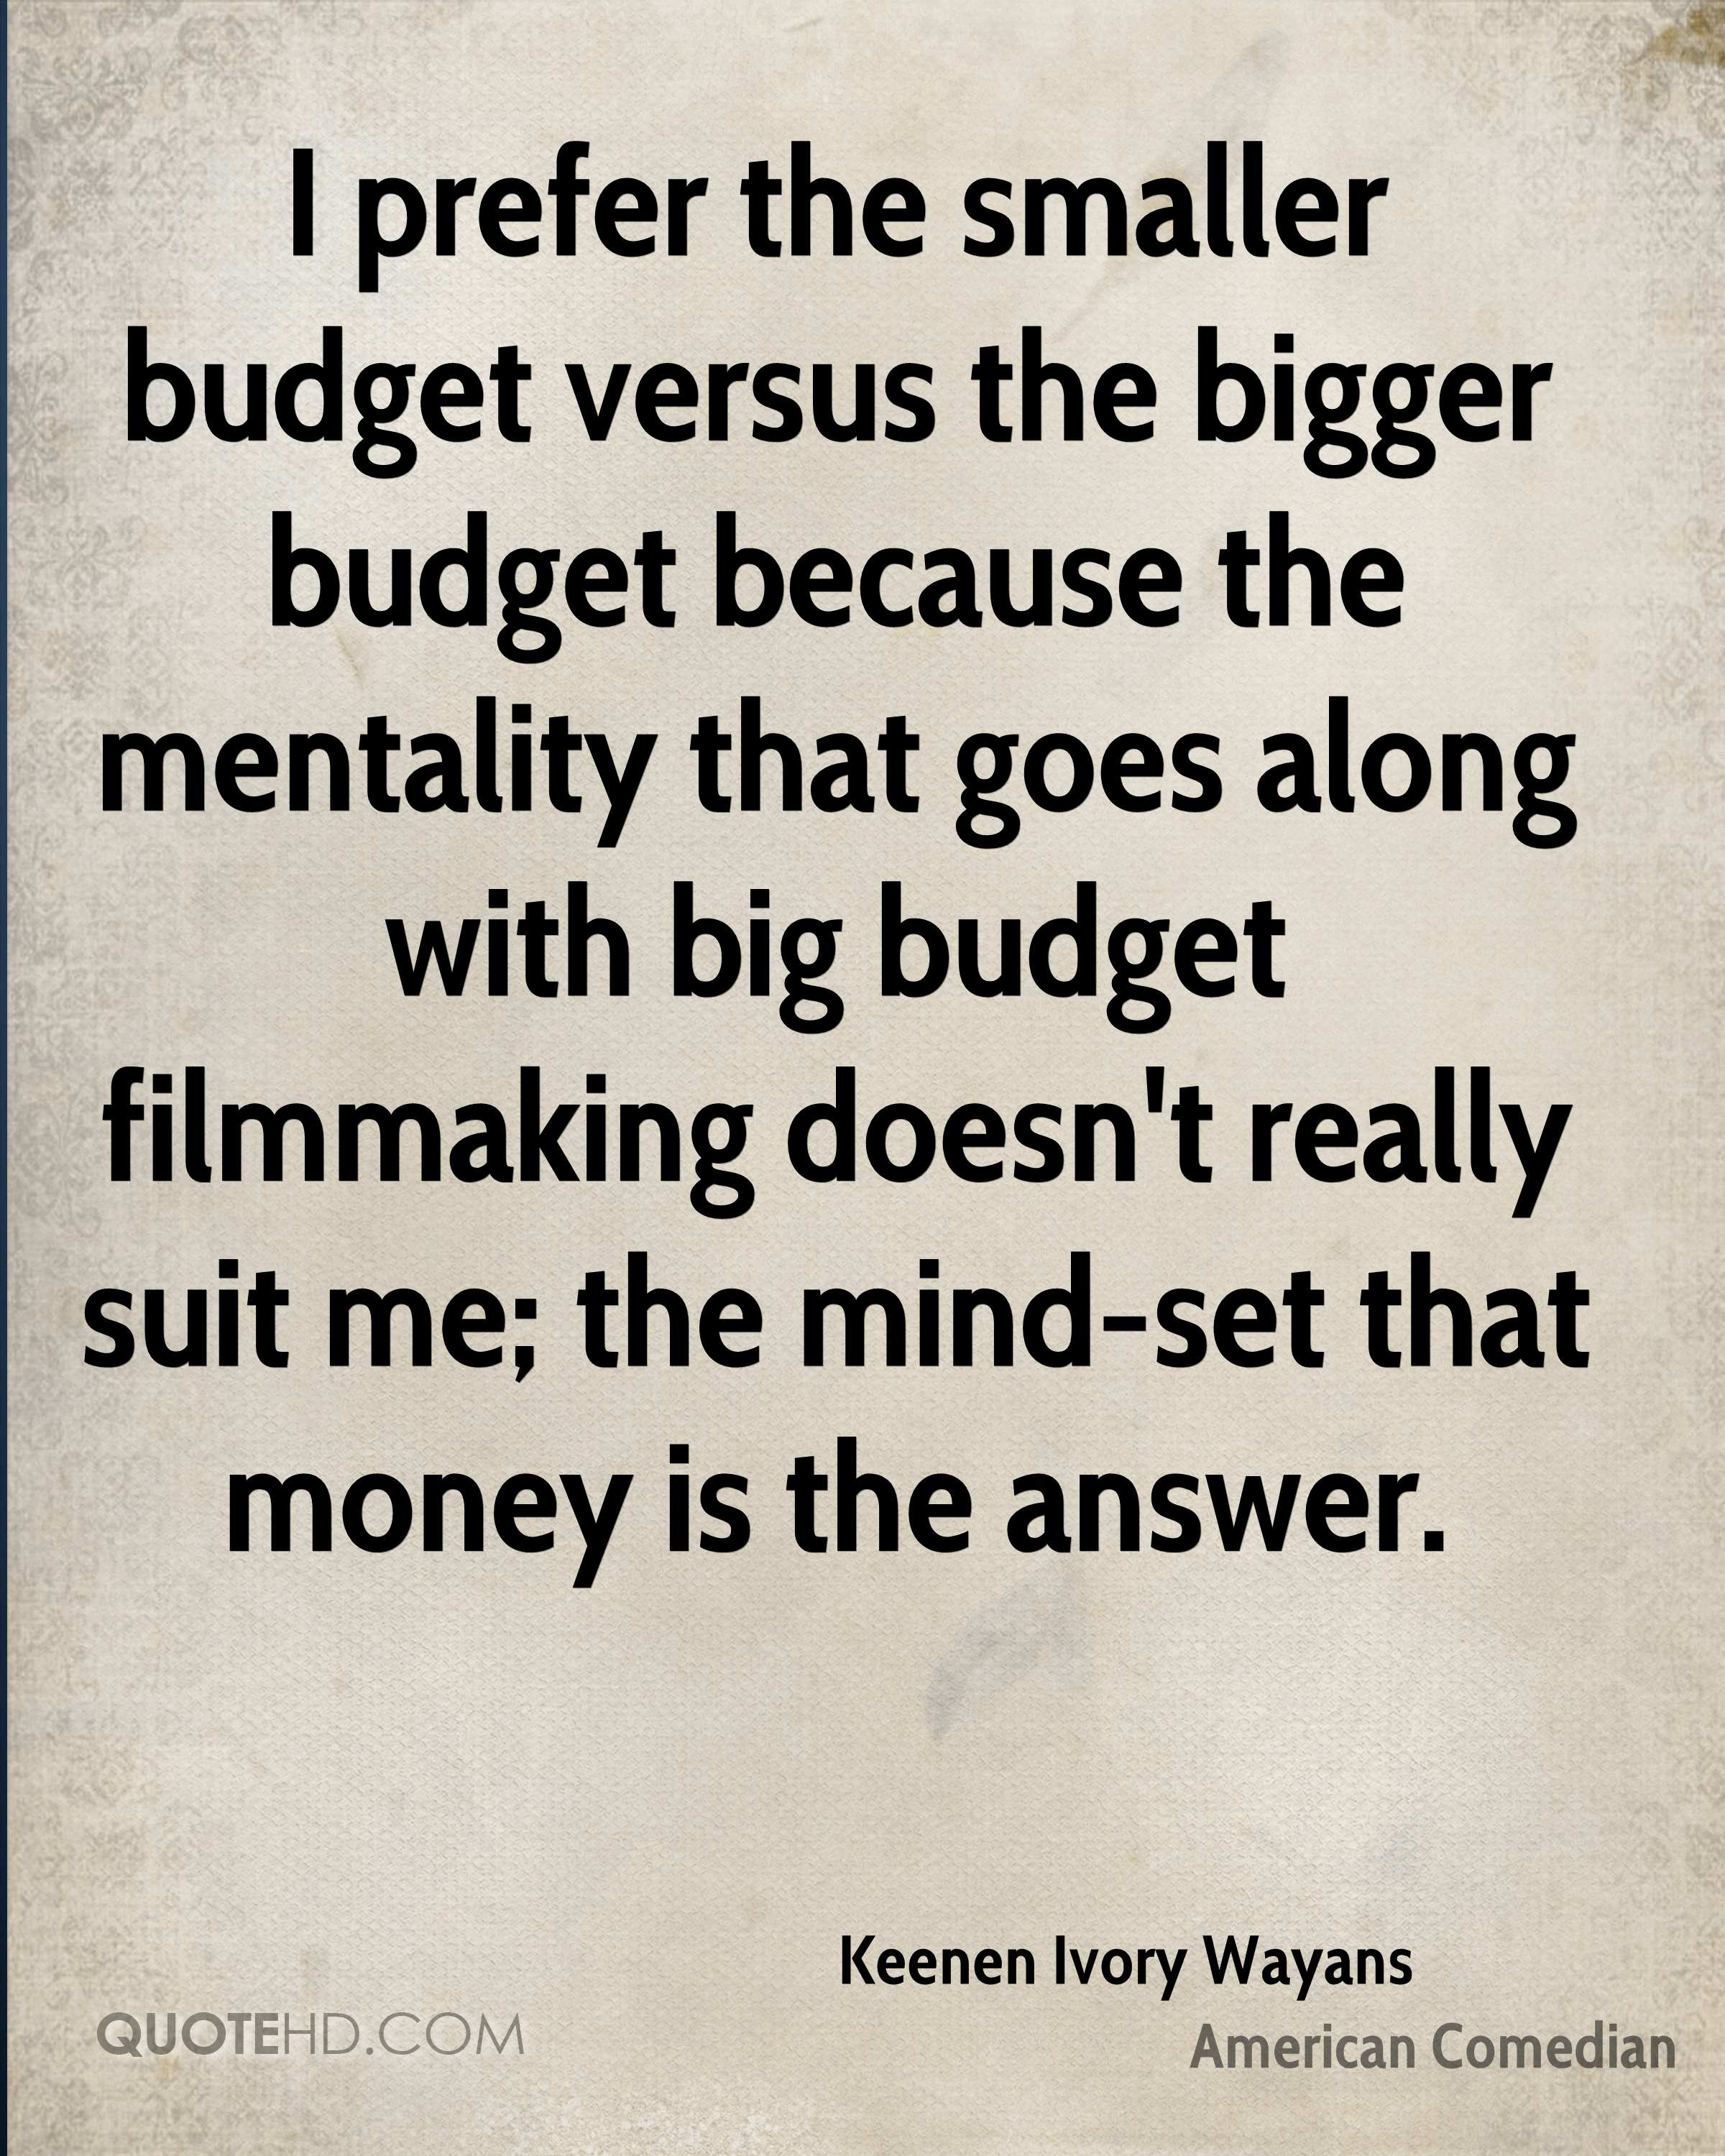 I prefer the smaller budget versus the bigger budget because the mentality that goes along with big budget filmmaking doesn't really suit me; the mind-set that money is the answer.